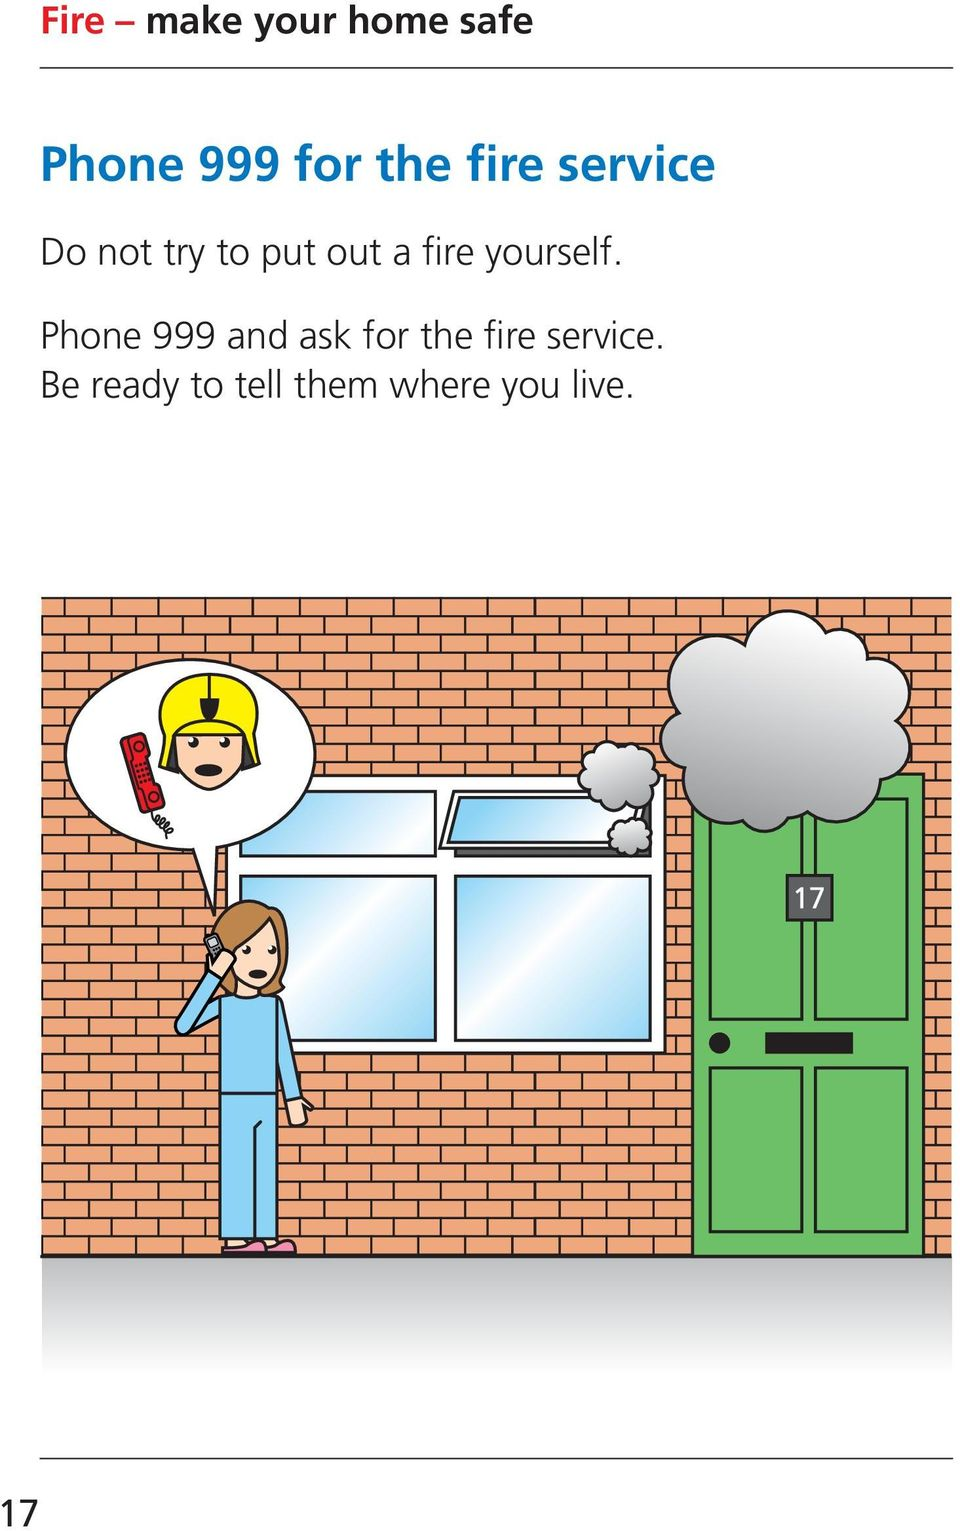 Phone 999 and ask for the fire